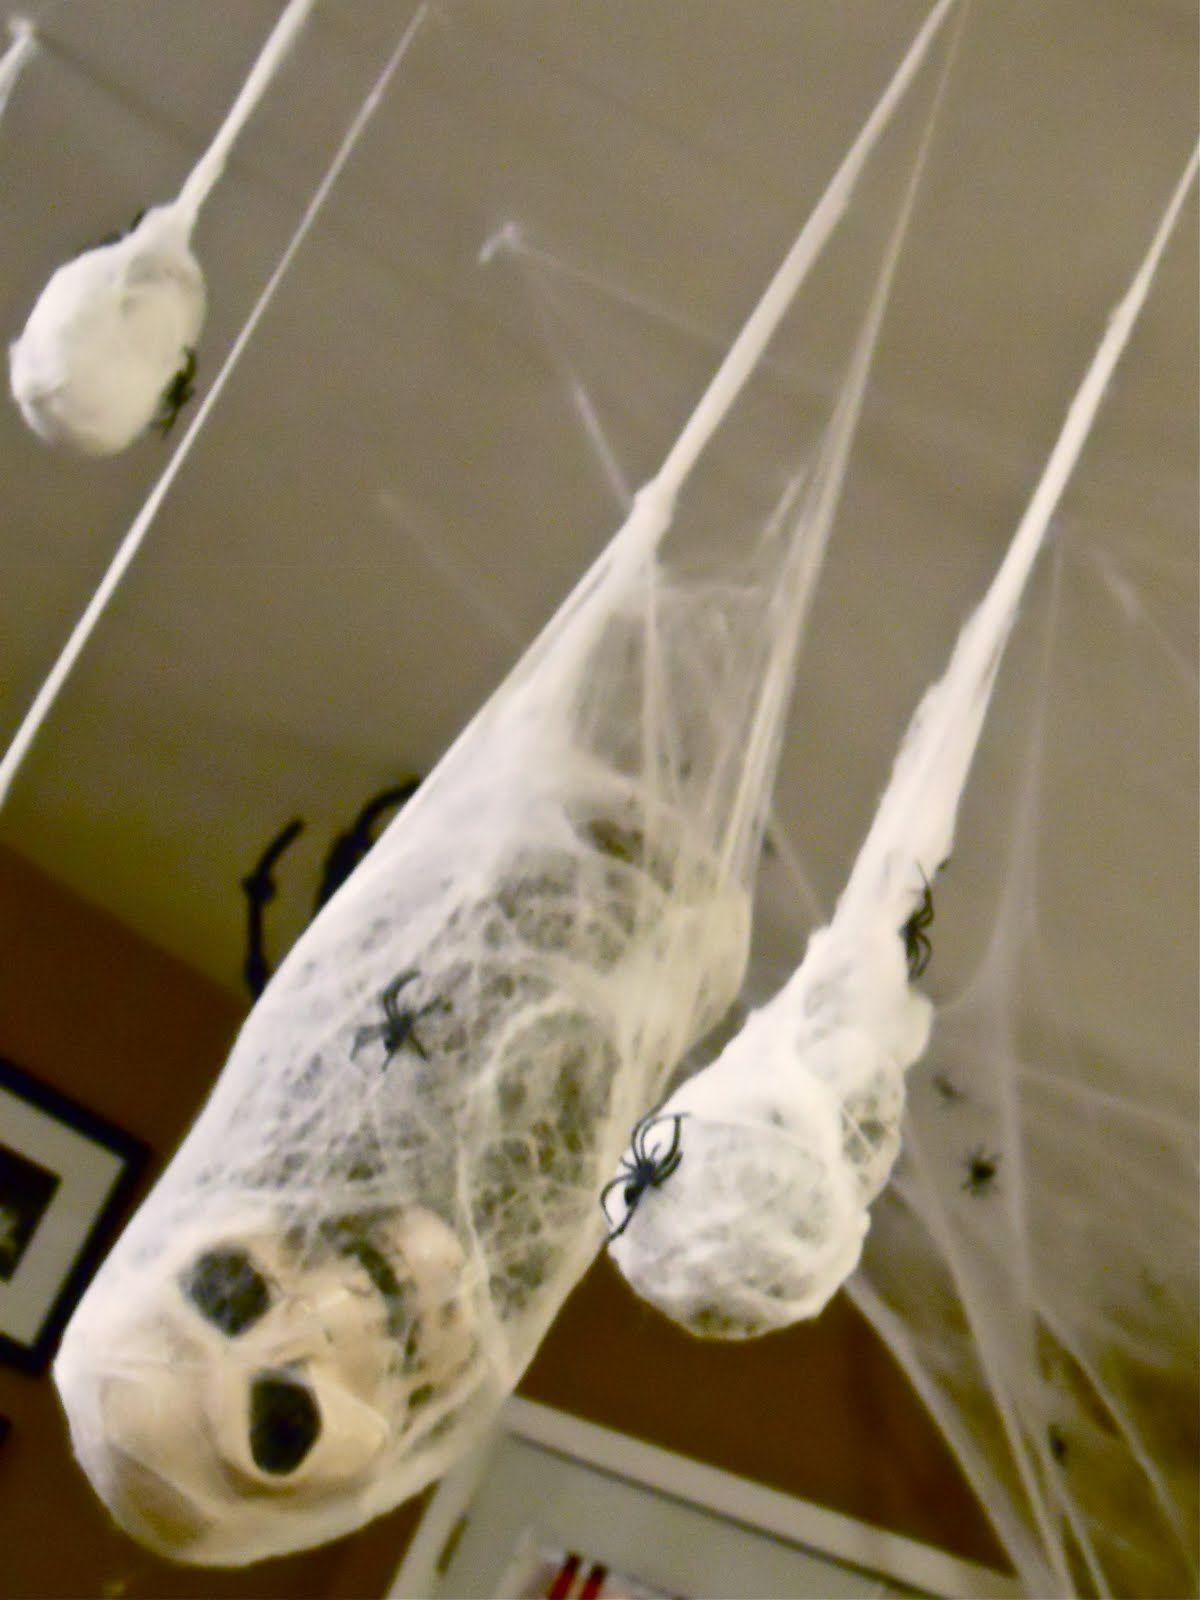 home decorating trends homedit - Diy Scary Halloween Decorations